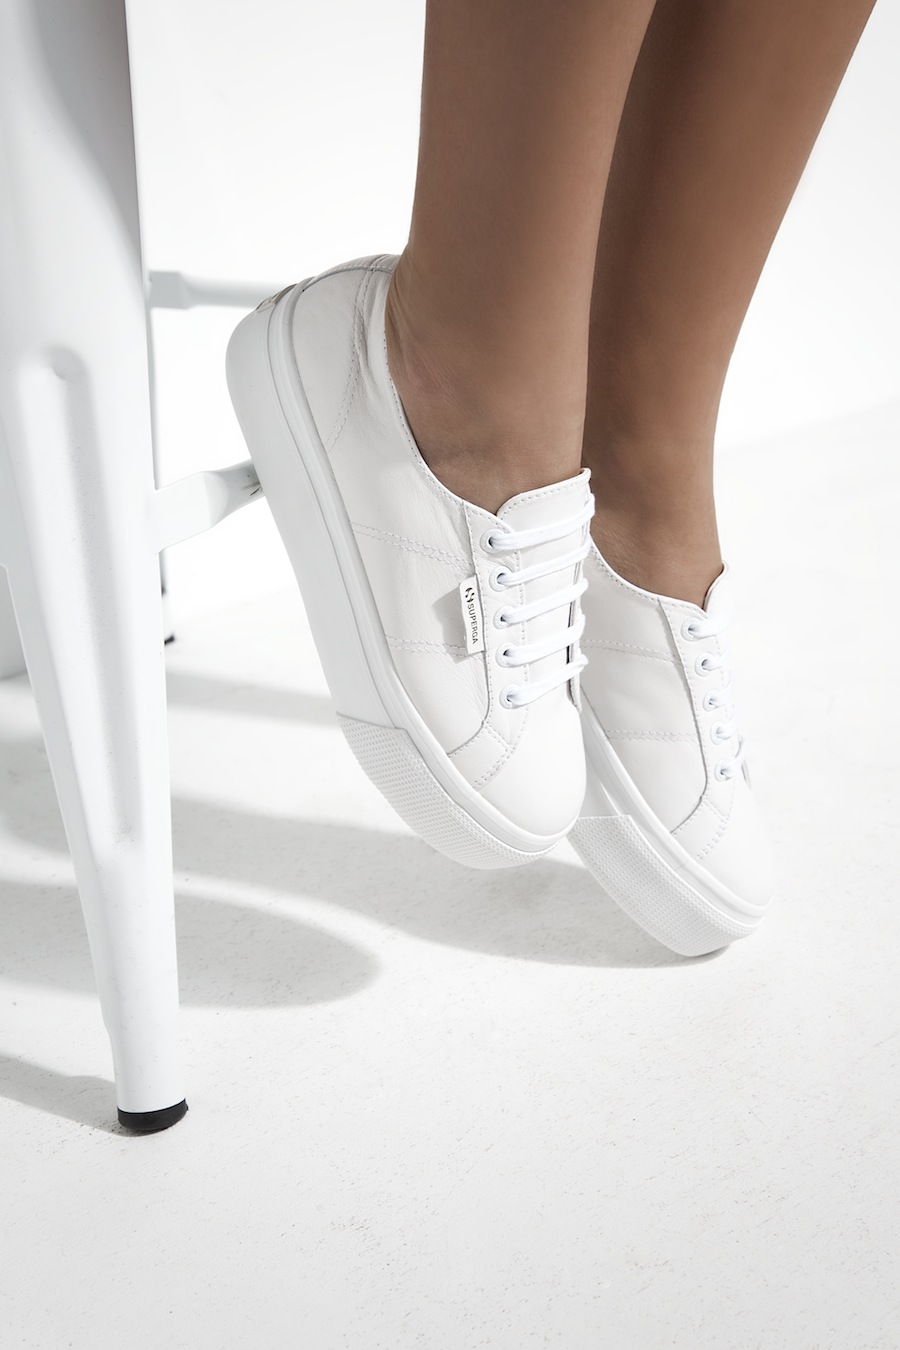 Tuchuzy and Superga have collaborated to create the white sneaker of your dreams